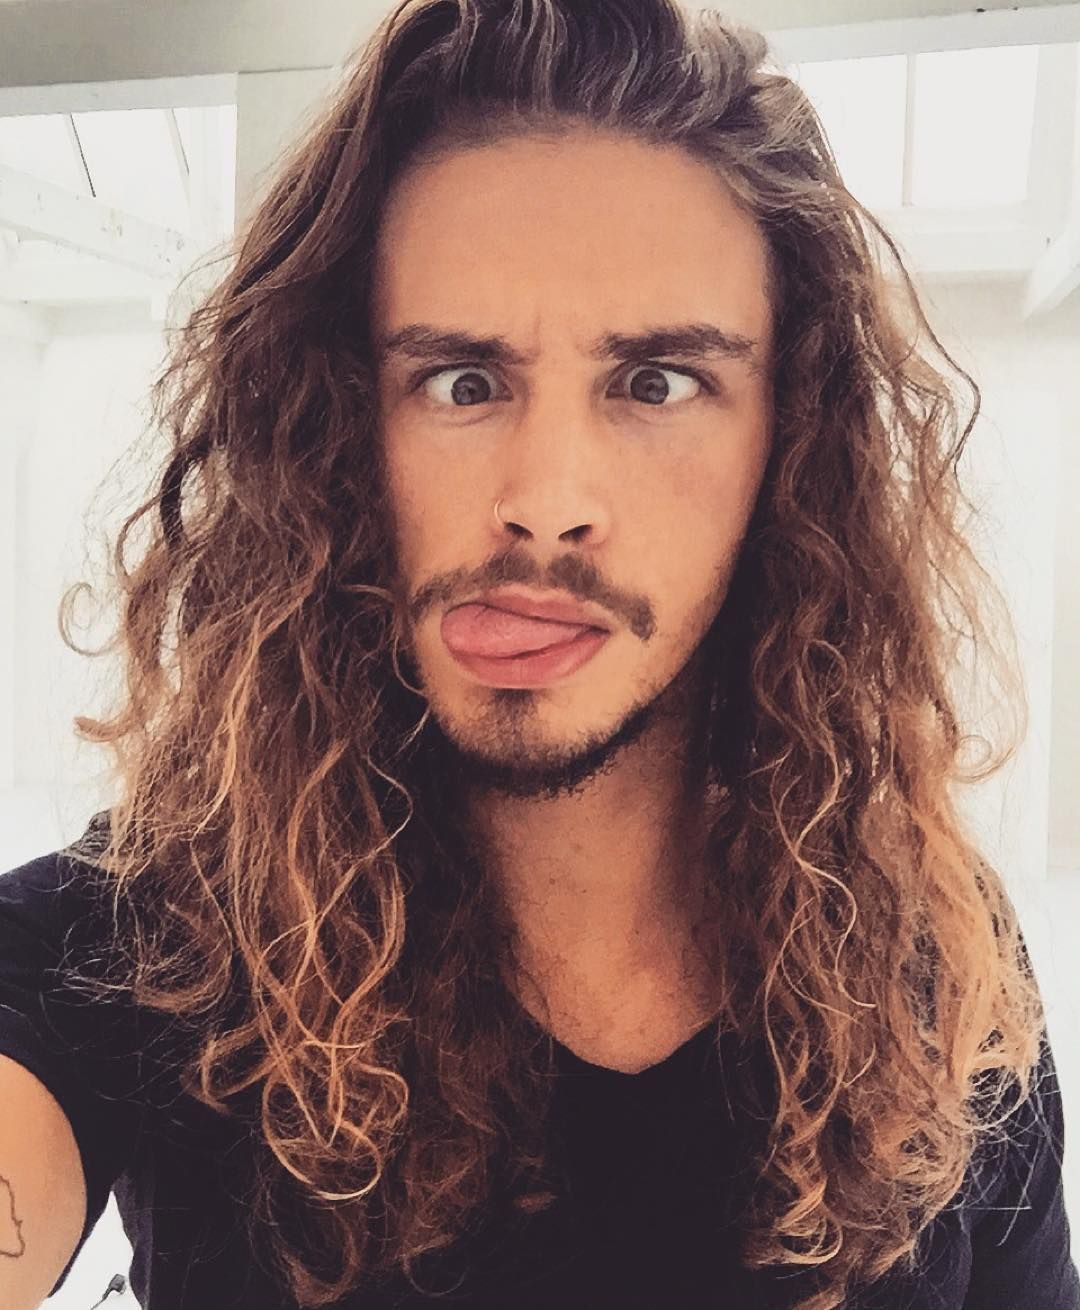 men style long hair giaro giarratana god u ve done well in 2019 hair 2930 | 0254db9f9e78f20ddb0e5a81e8413c4b